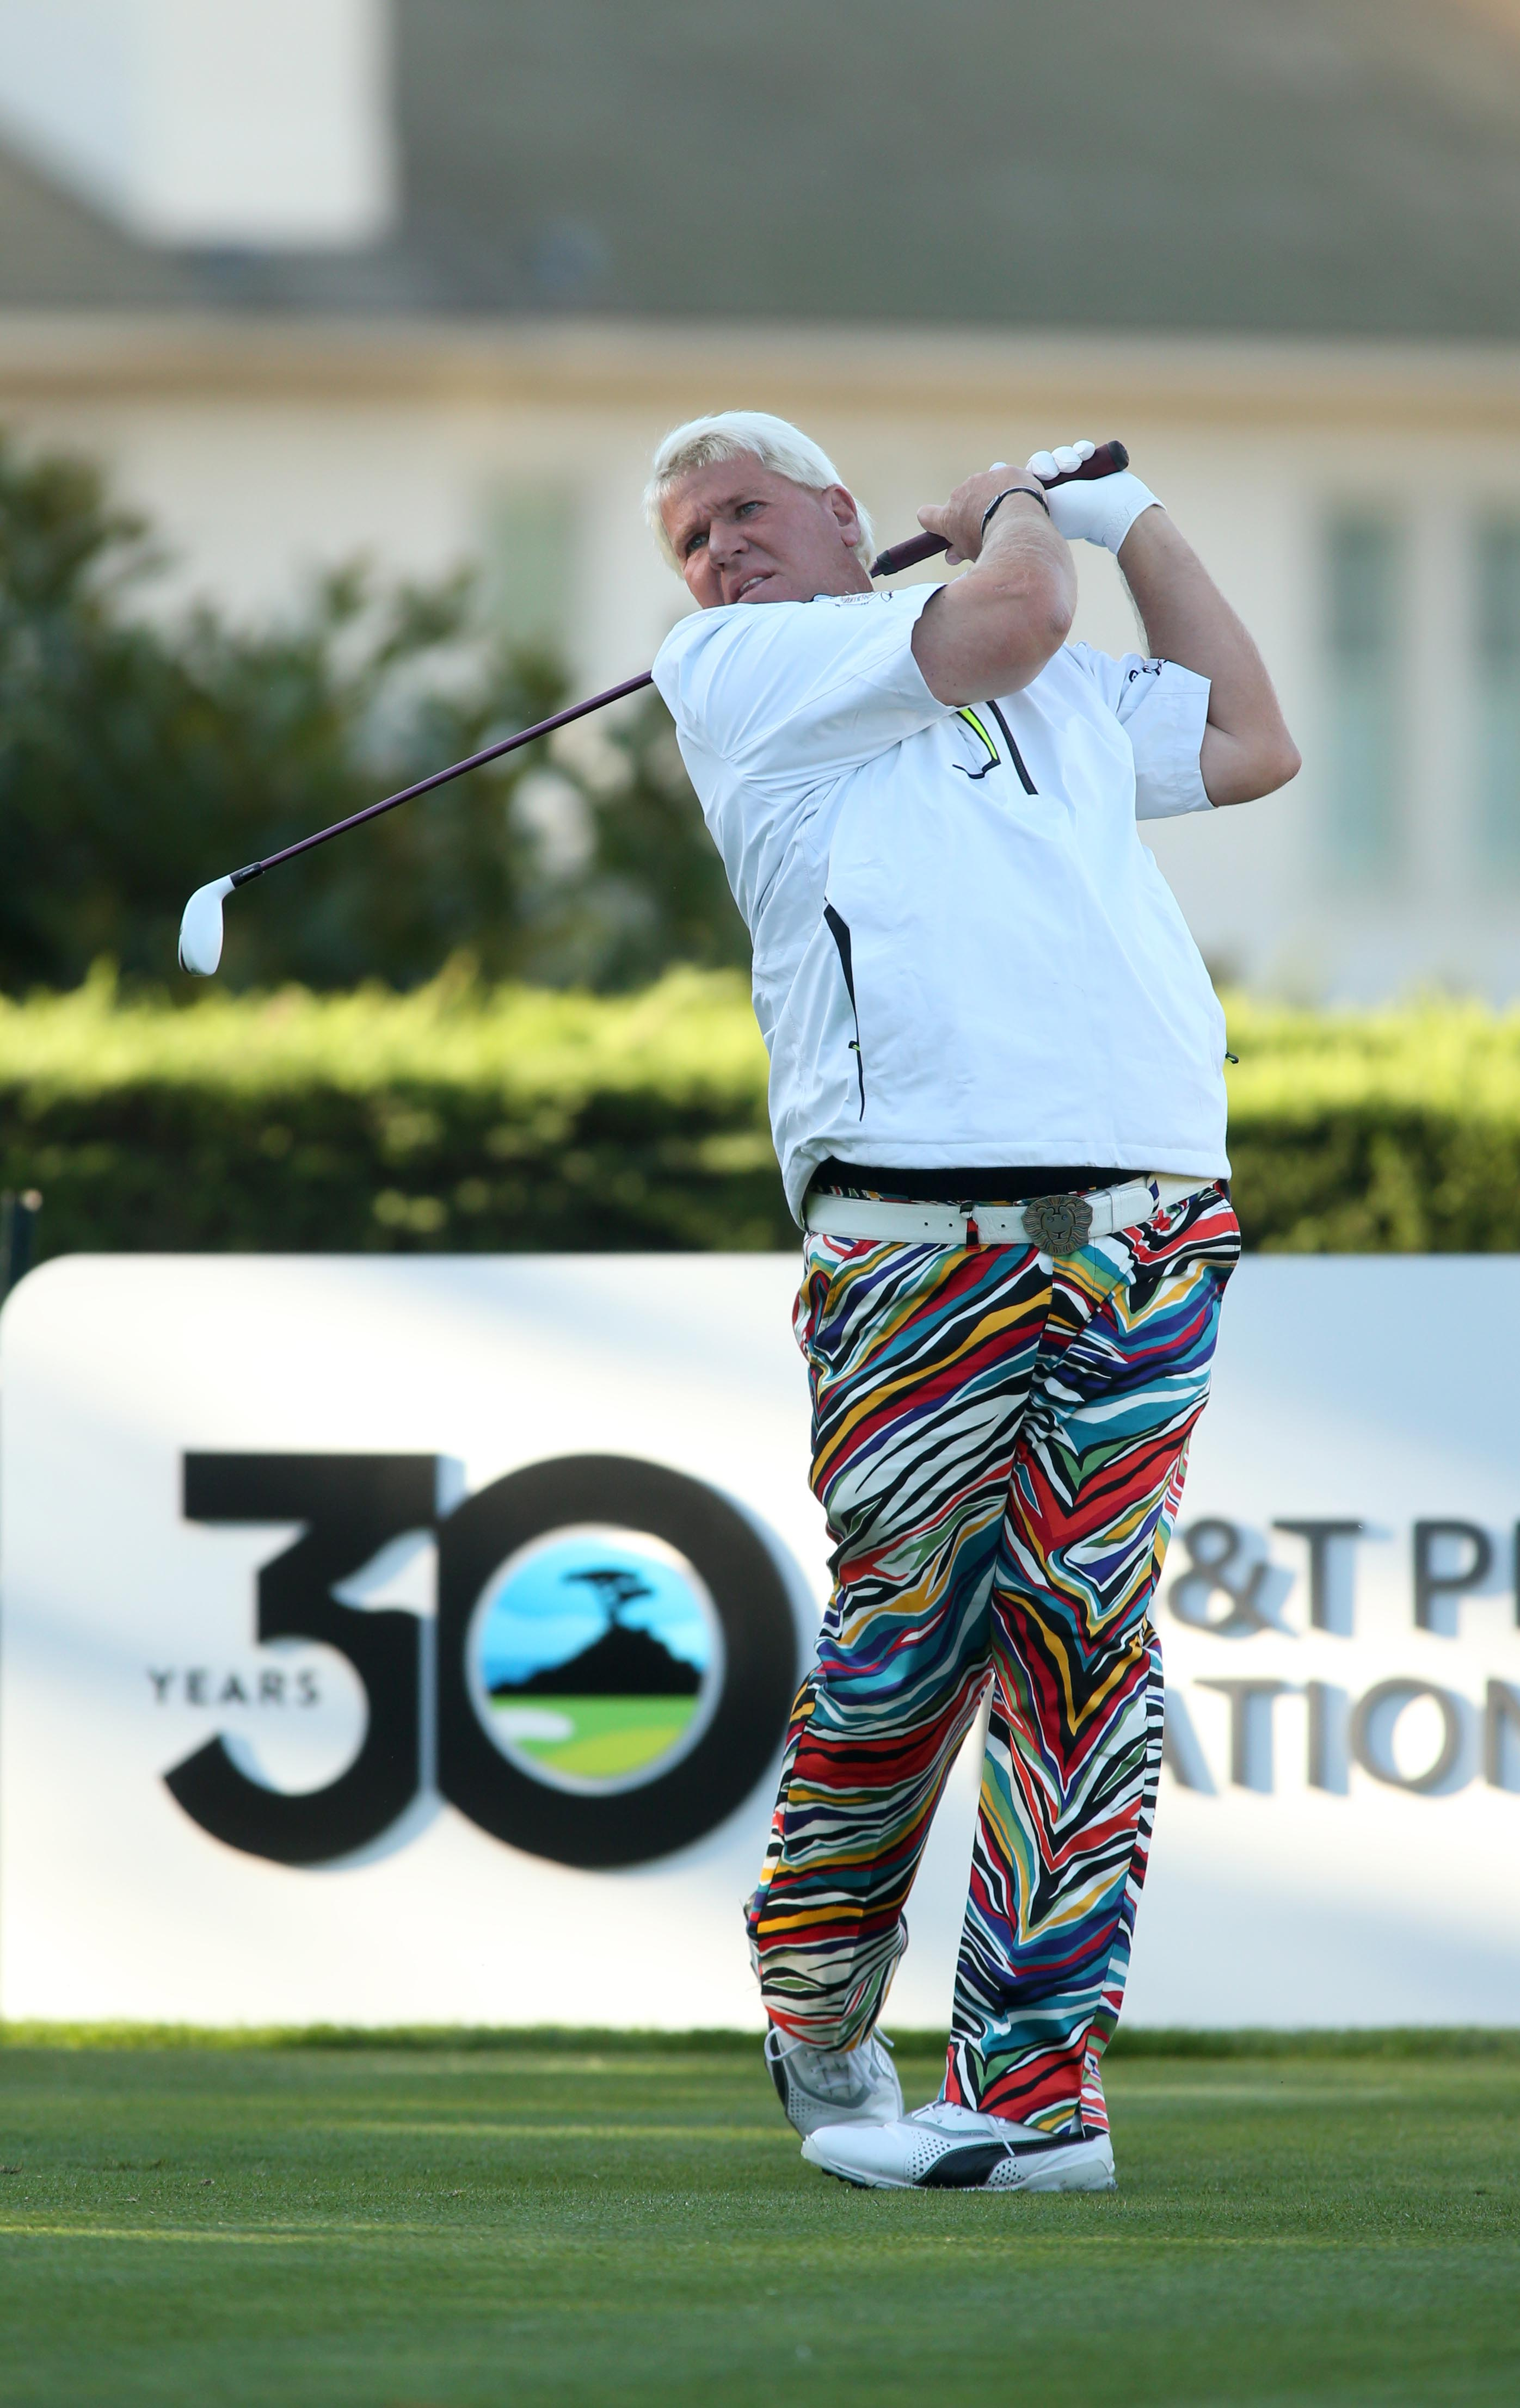 John Daly matches best opening round of career at Pebble Beach National Pro-Am